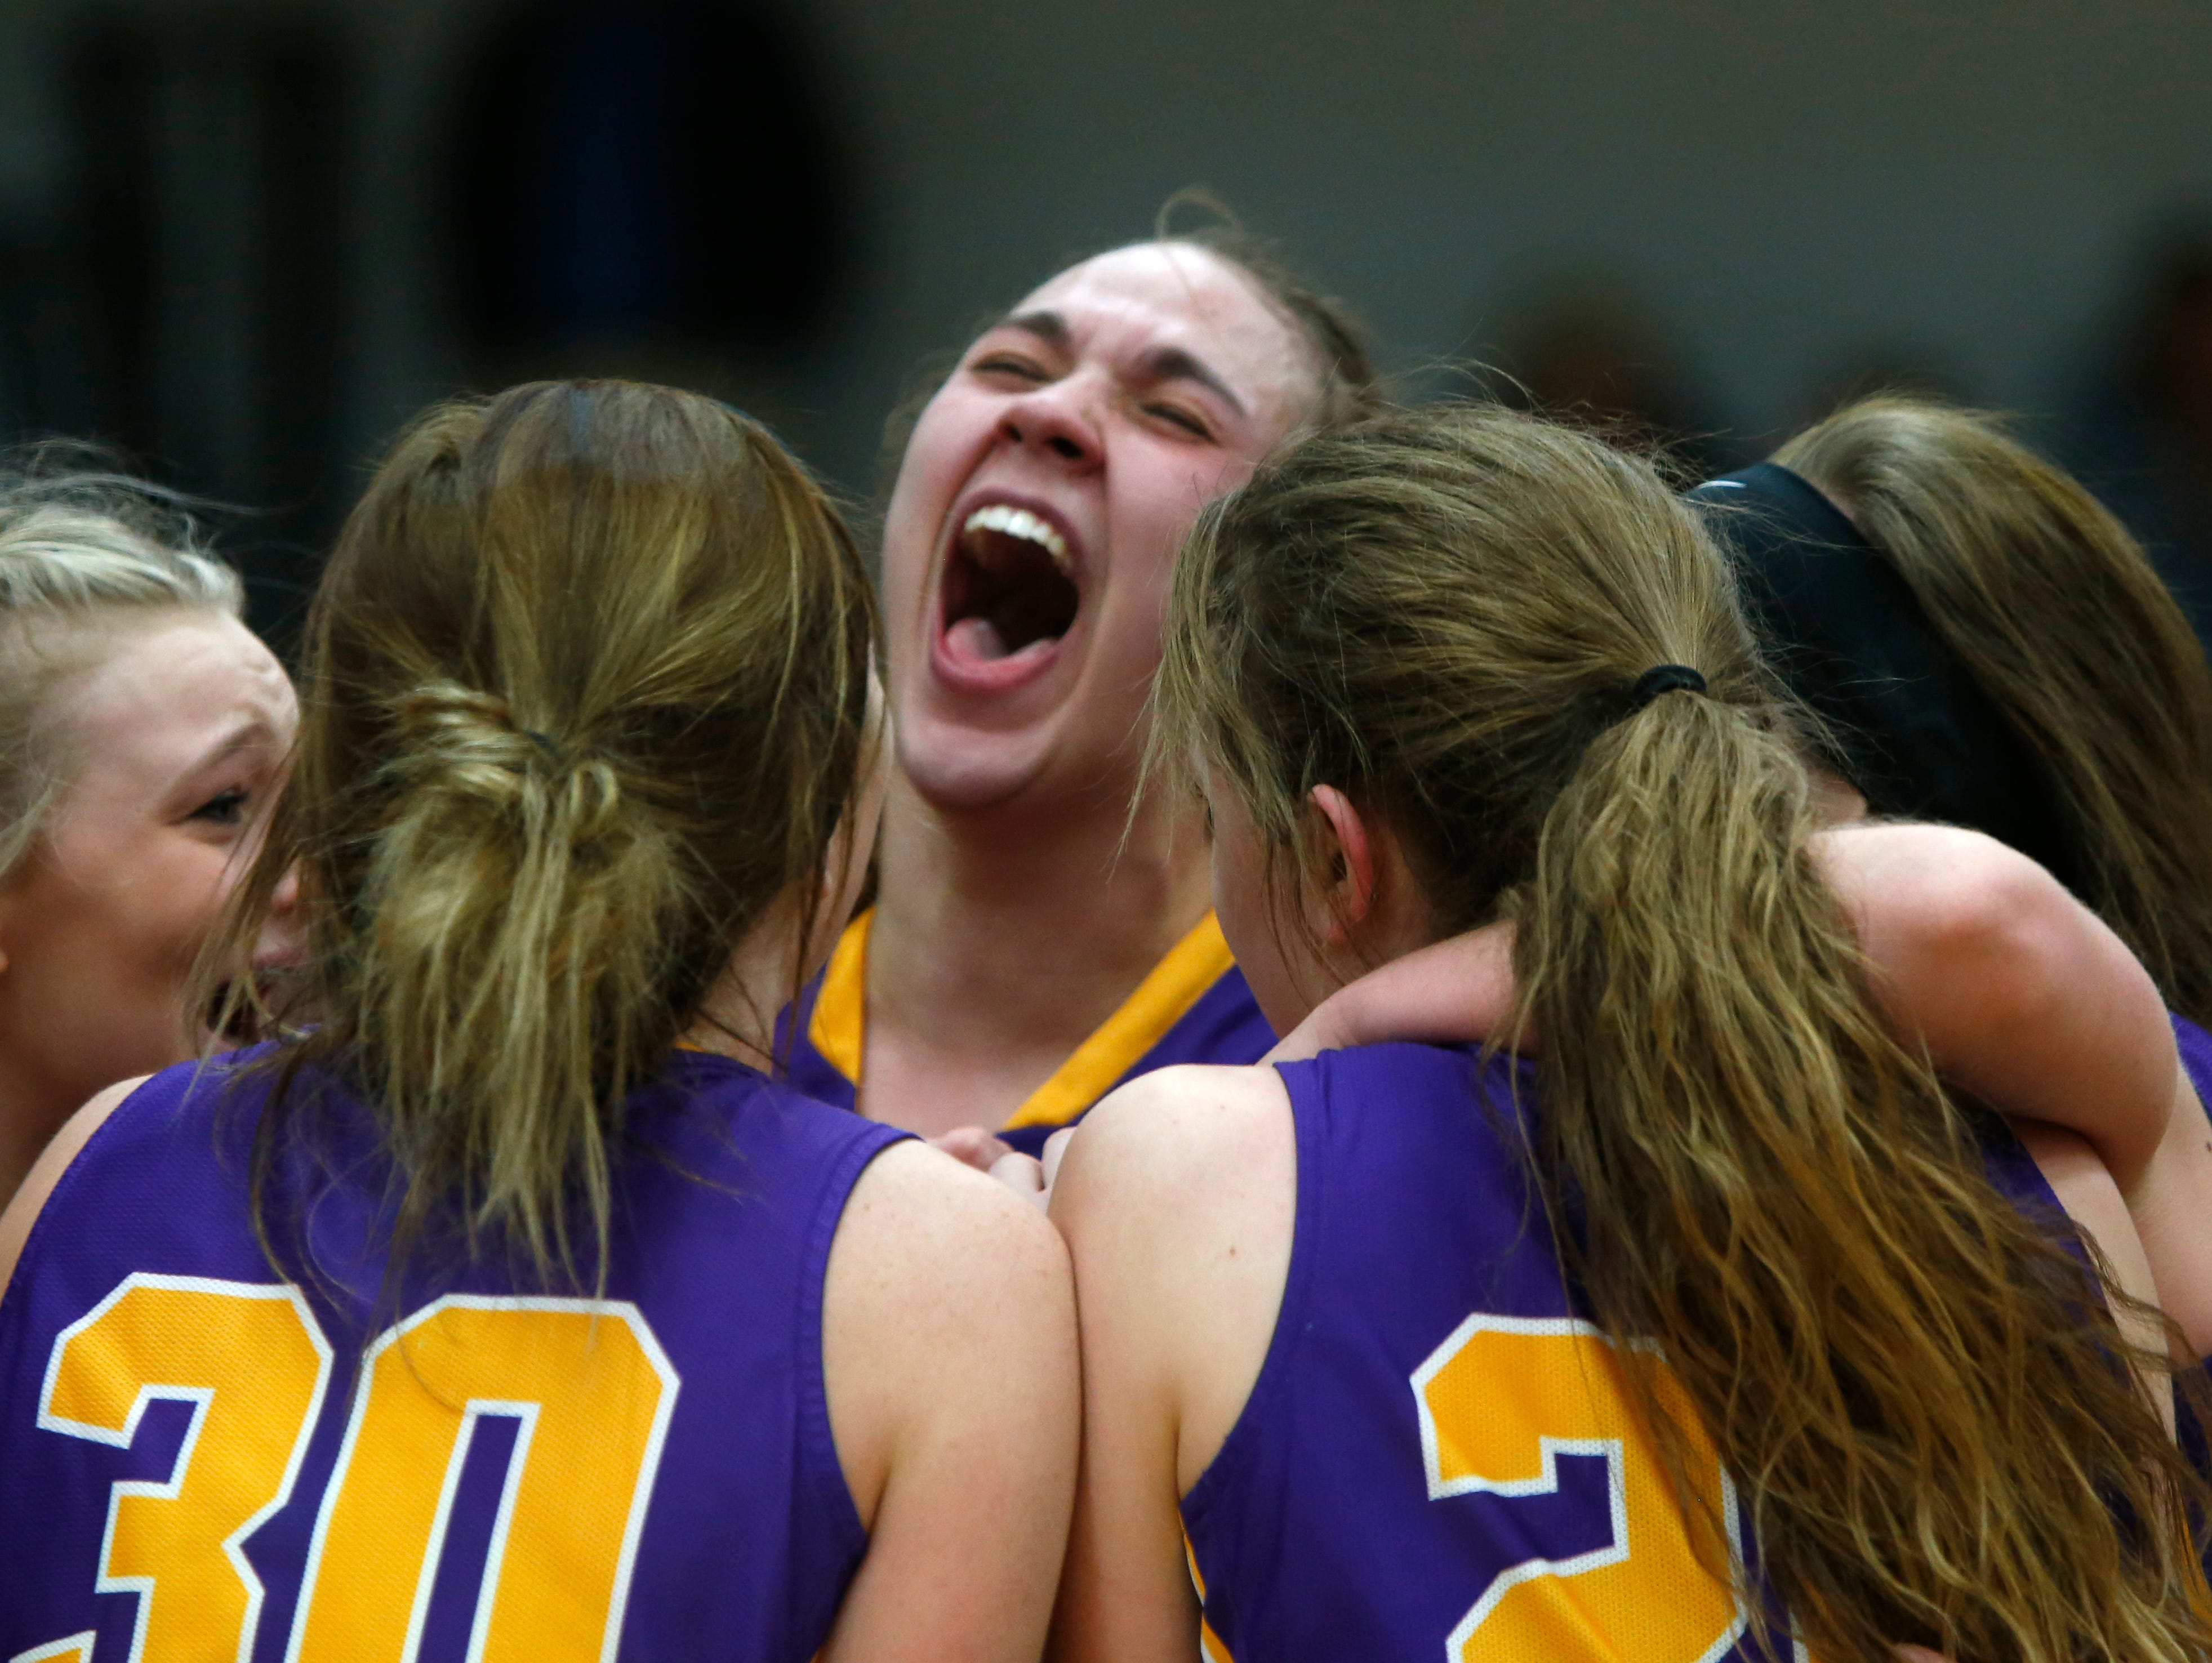 Eastern-Pekin players celebrated after their victory over providence in the Indiana girls sectional final. Jan. 4, 20167.